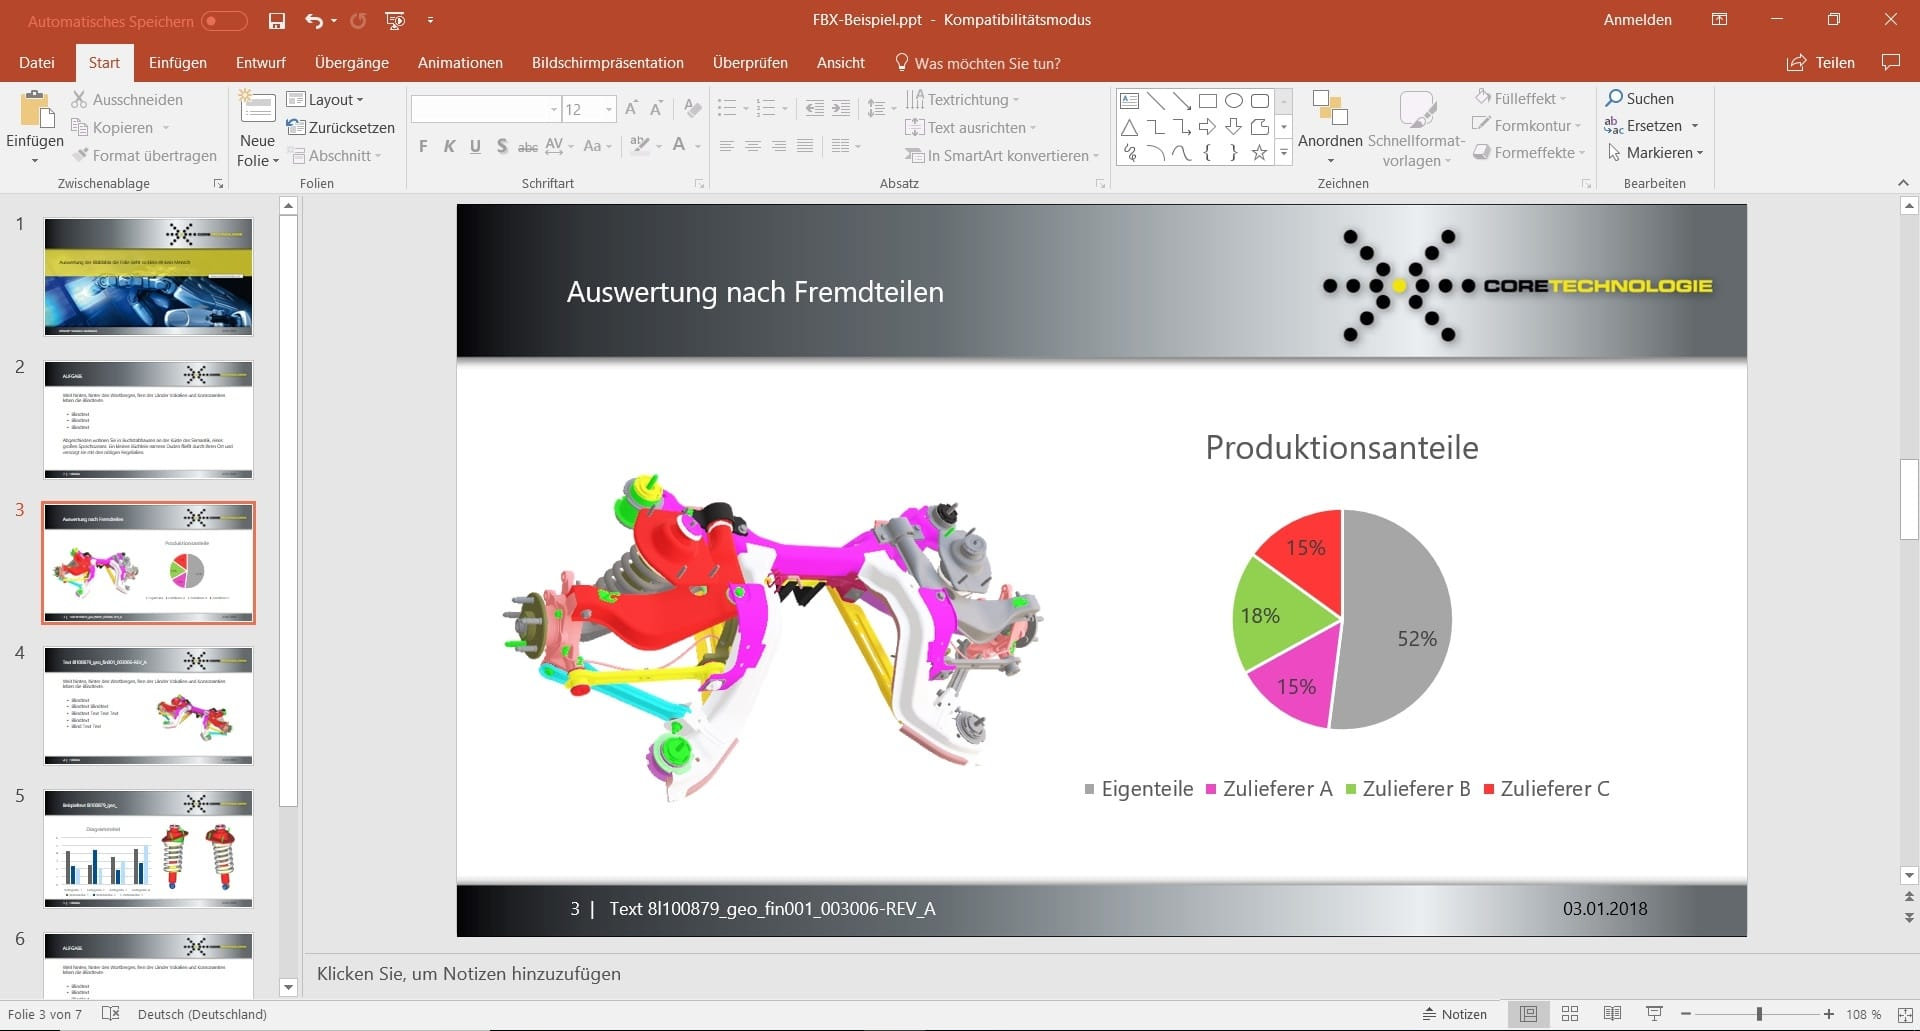 3D_Evolution: 3D-Modelle in PowerPoint